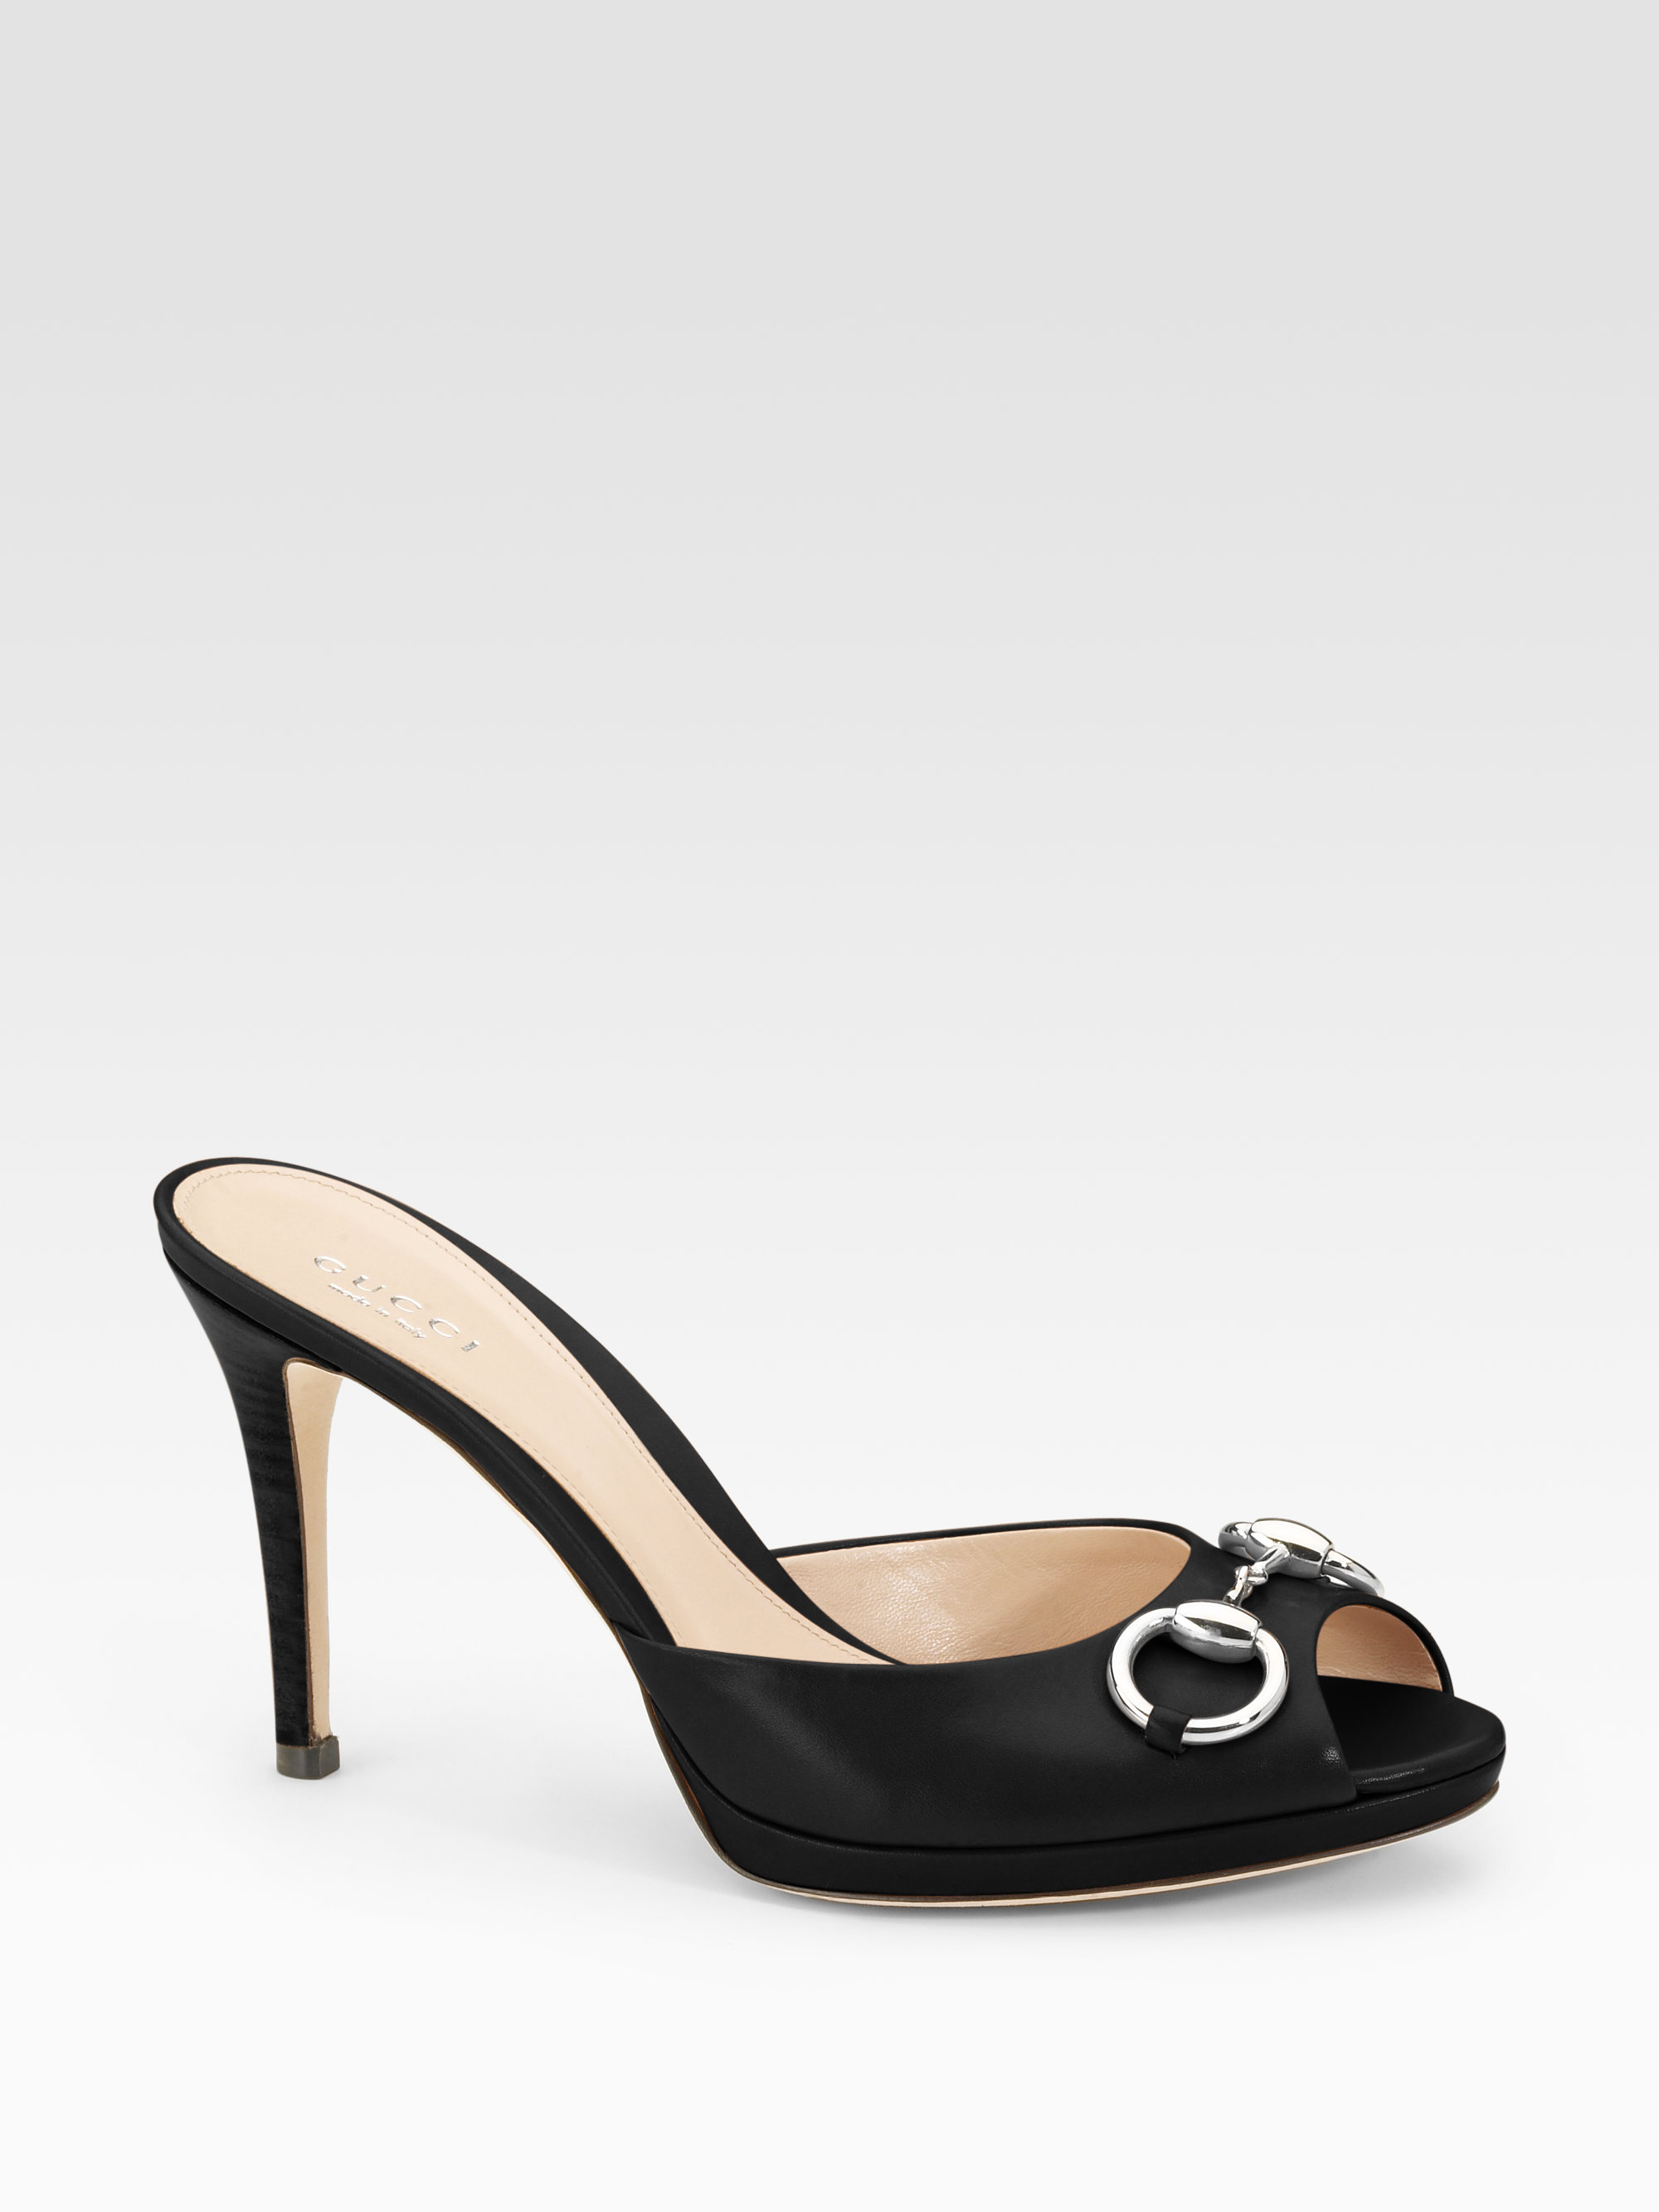 c08e7caf3 Gucci Hollywood Leather Horsebit Peep Toe Sandals in Black - Lyst